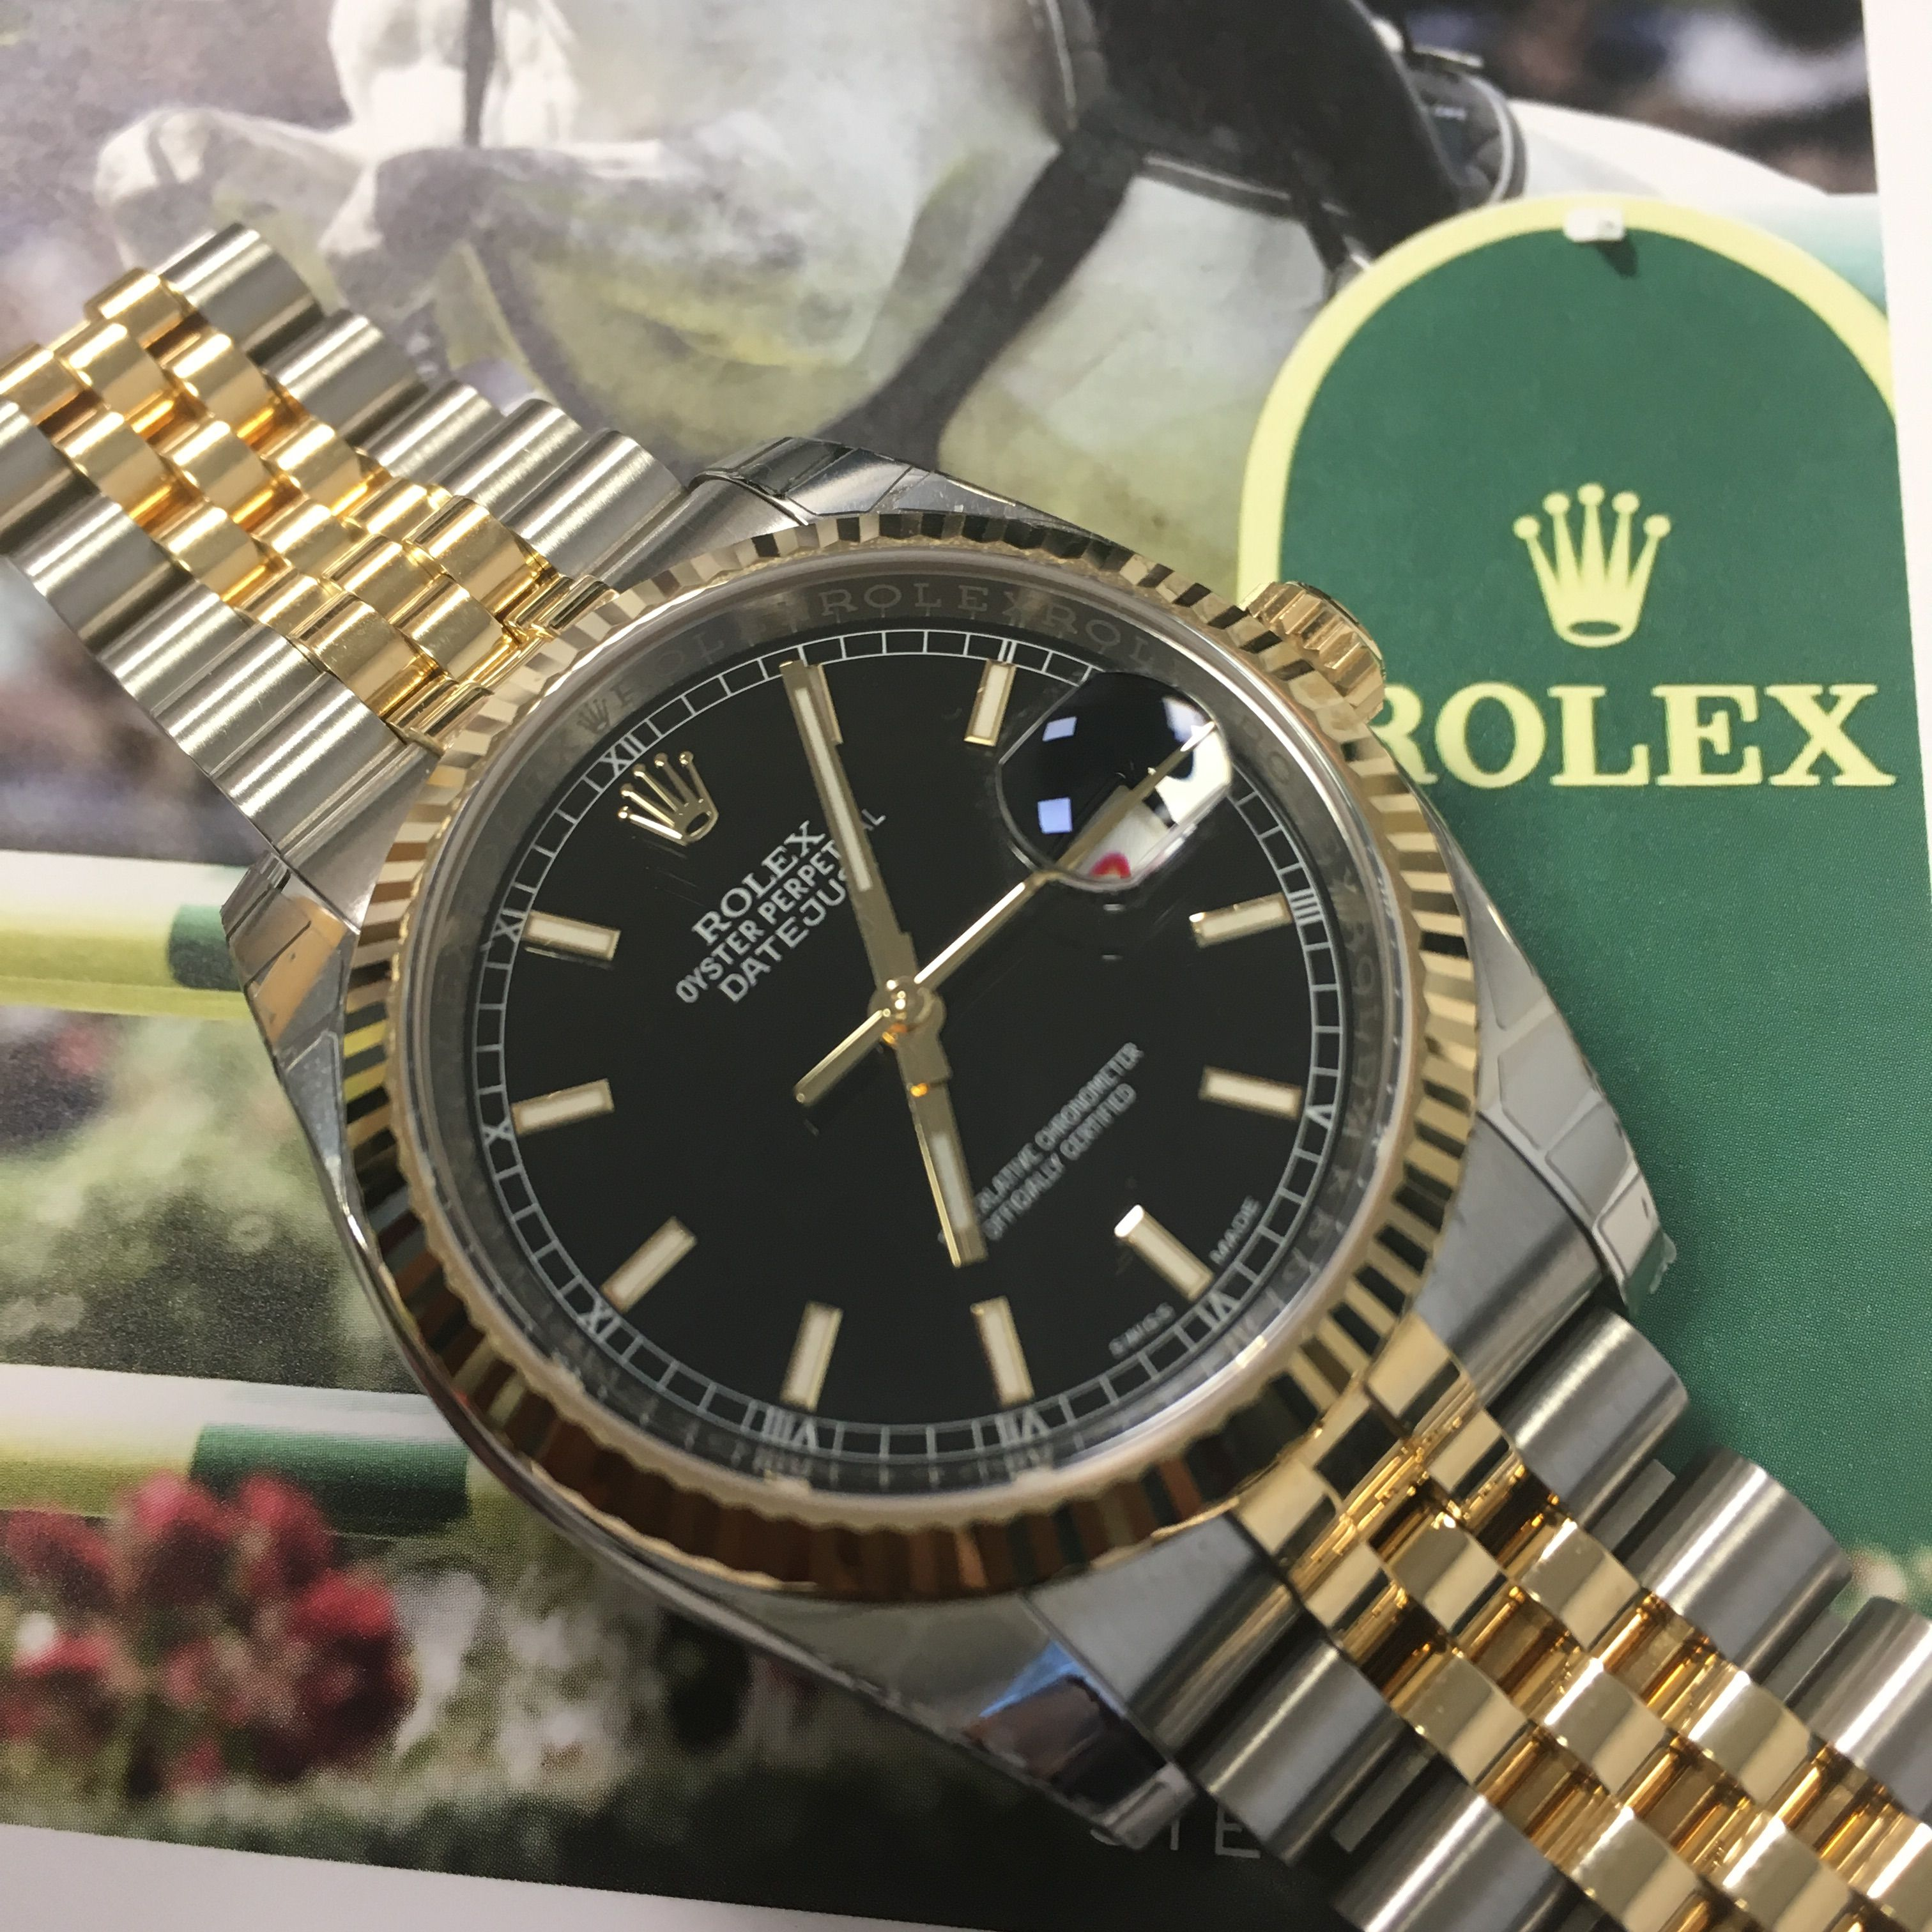 Got To Love A Datejust Classic Rolex Datejust Steel Gold Black Baton Dial Now In Stock Rolex Rolex Datejust Datejust